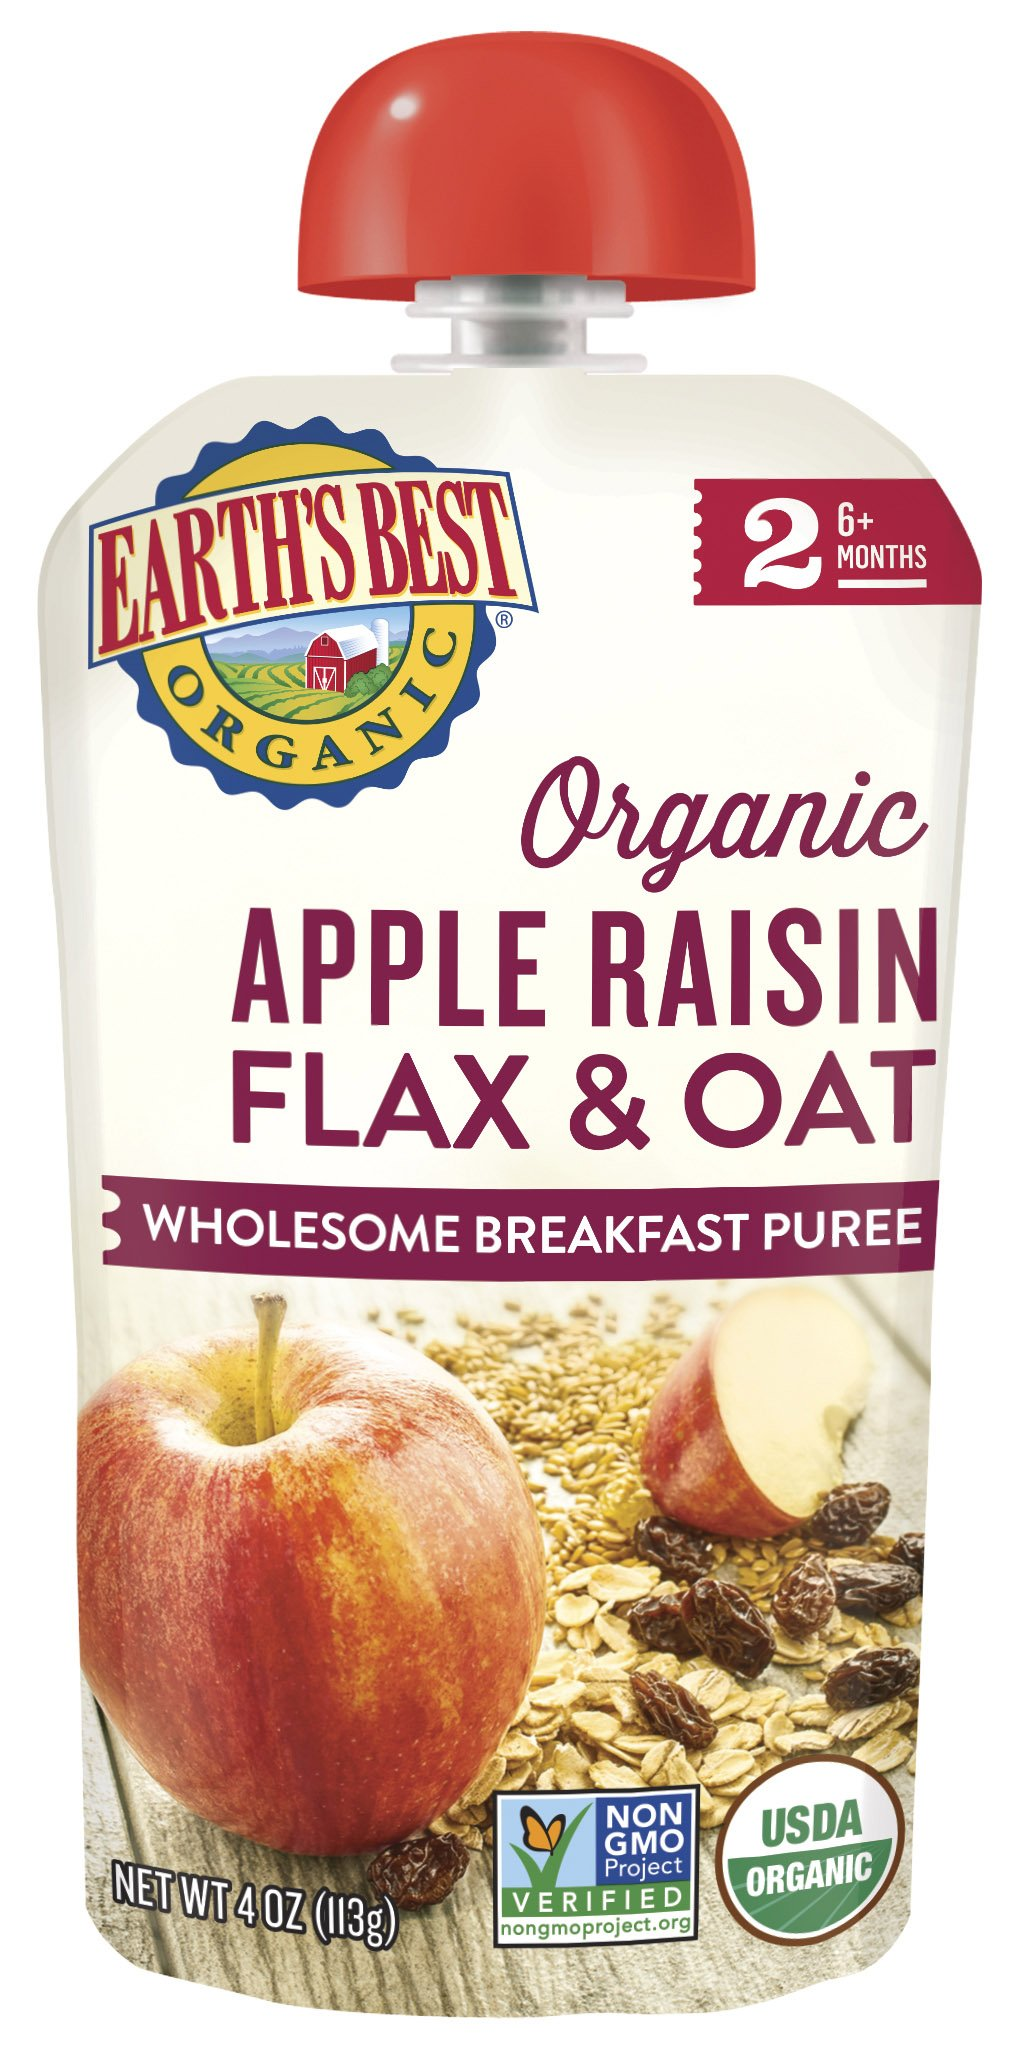 Earth's Best Organic Apple Raisin Flax & Oat Wholesome Breakfast Puree Puree (6mth+)